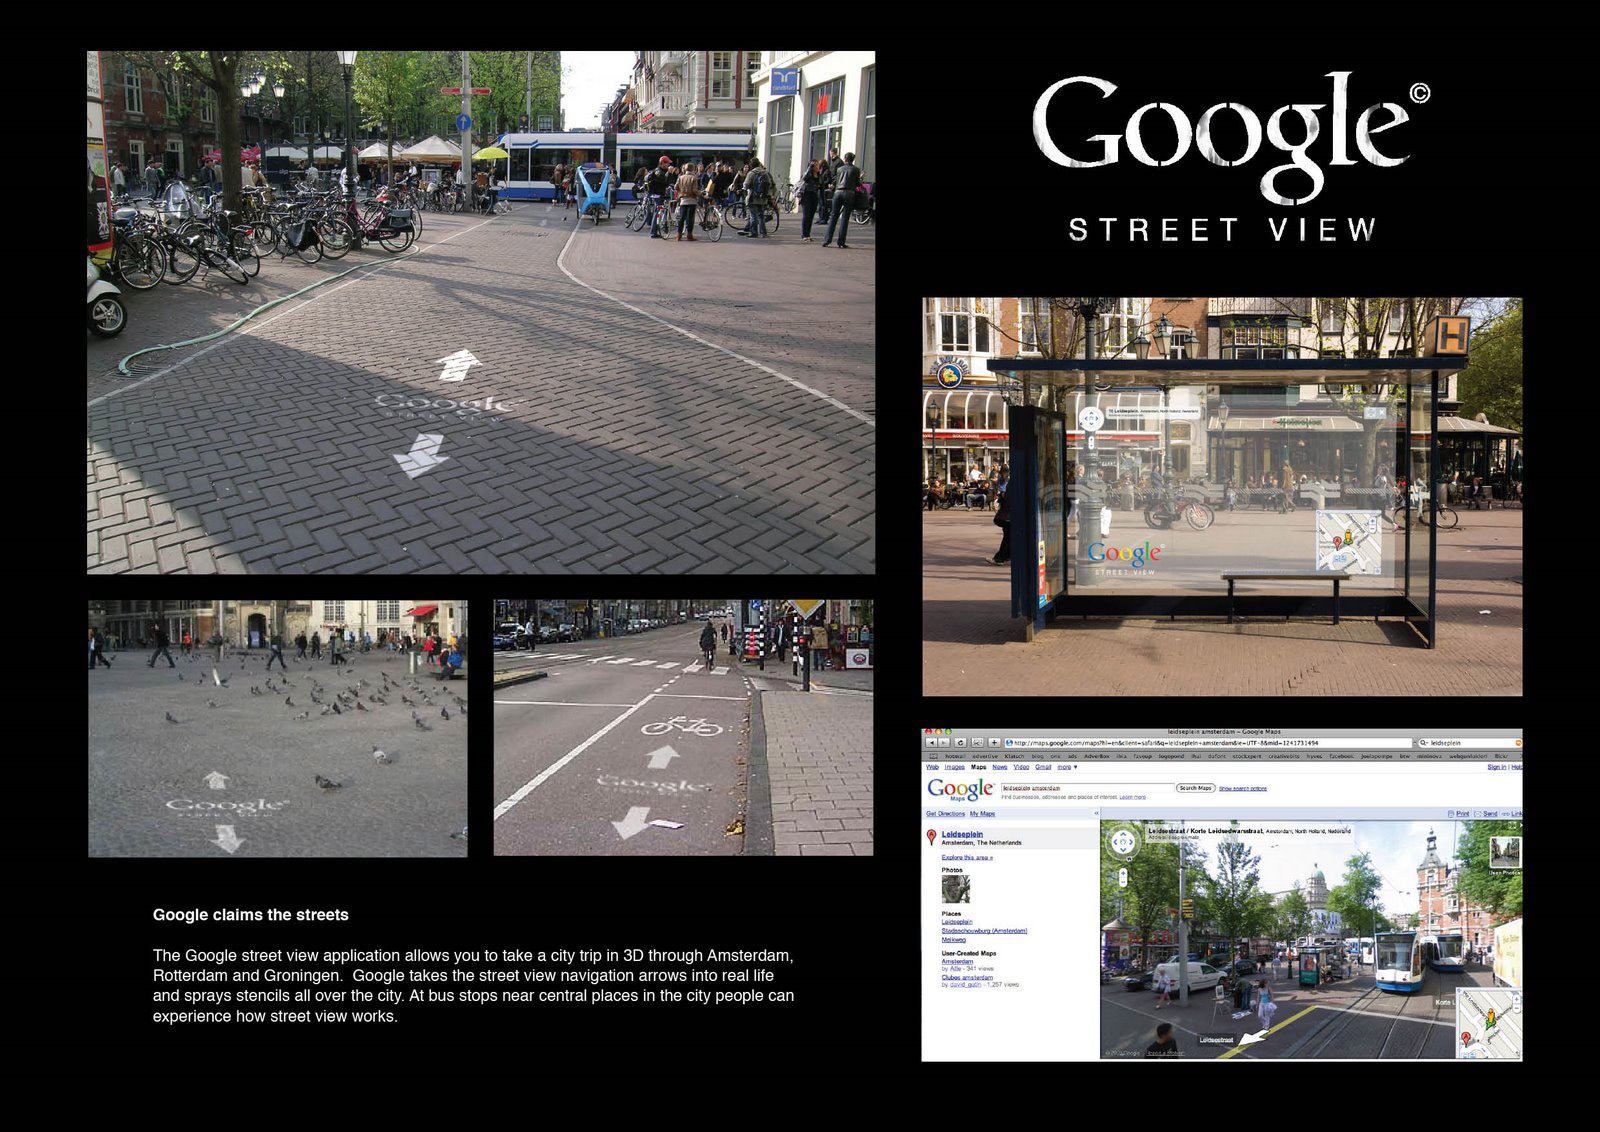 Google Outdoor Advert By Junior: Google claims the streets | Ads of ...